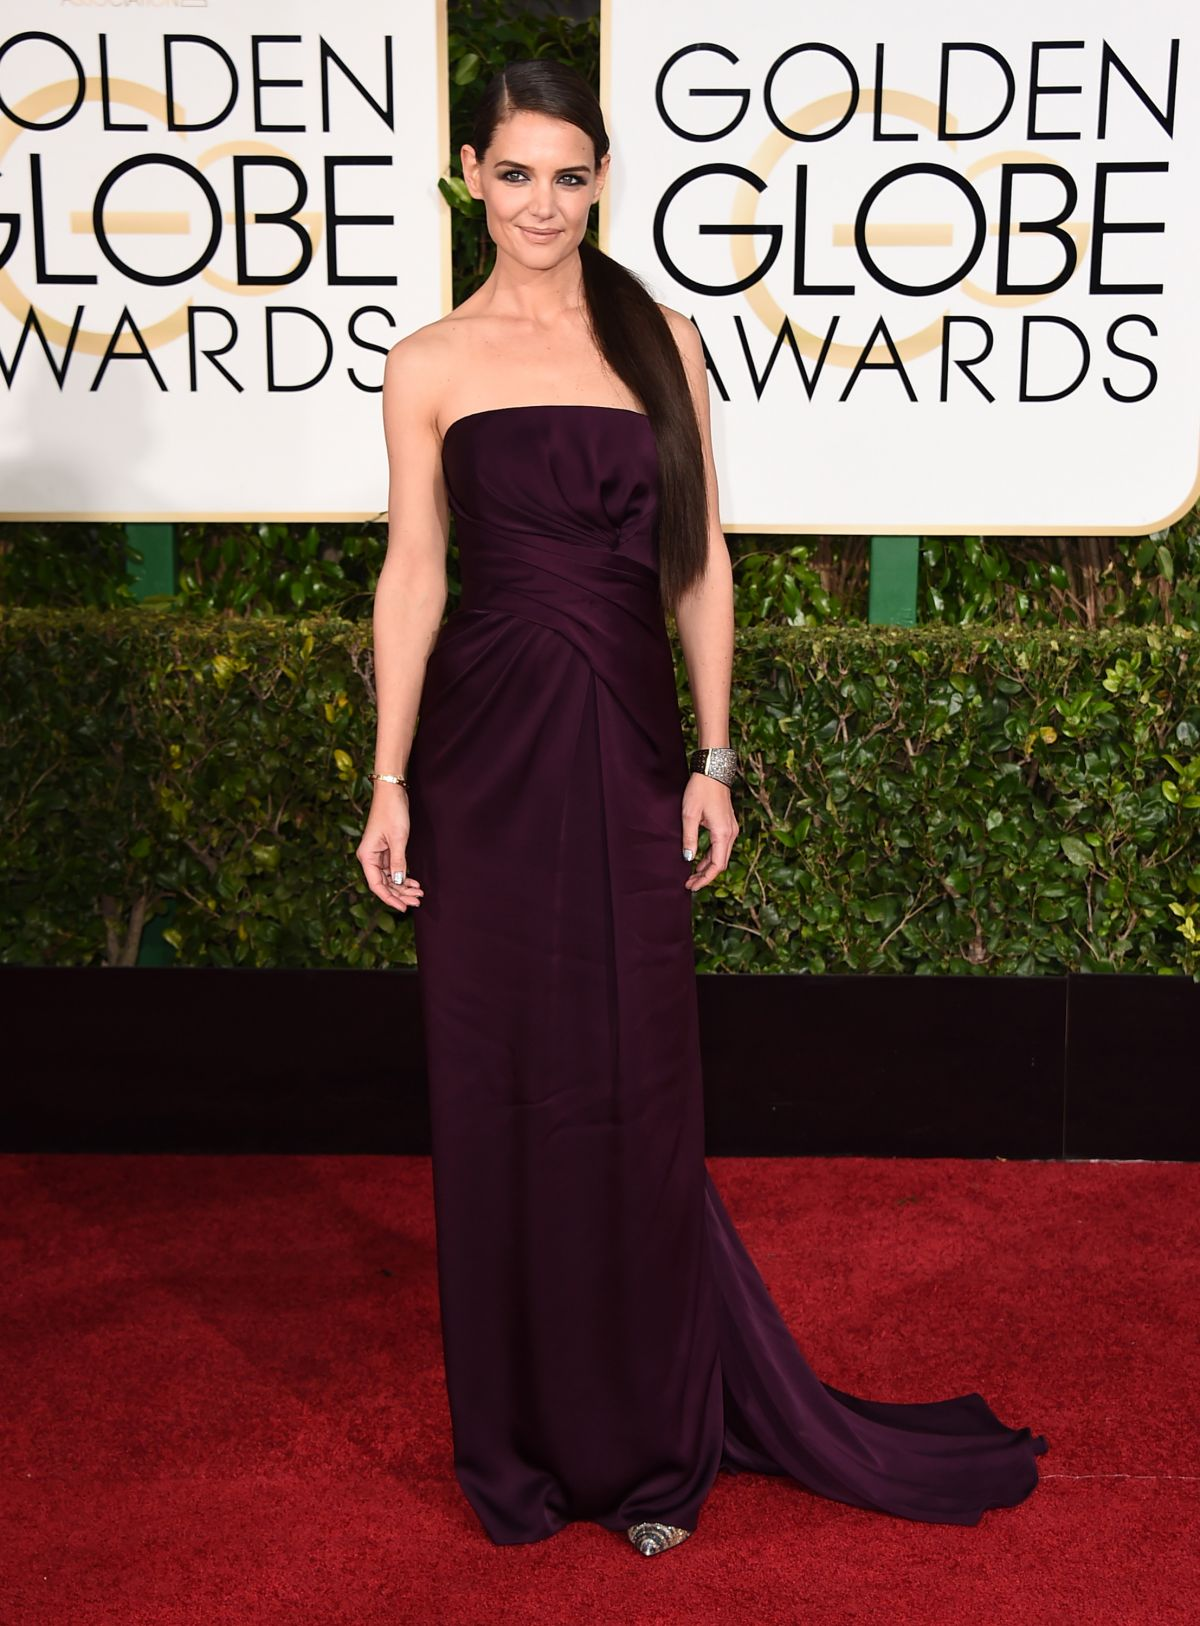 KATIE HOLMES at 2015 Golden Globe Awards in Beverly Hills